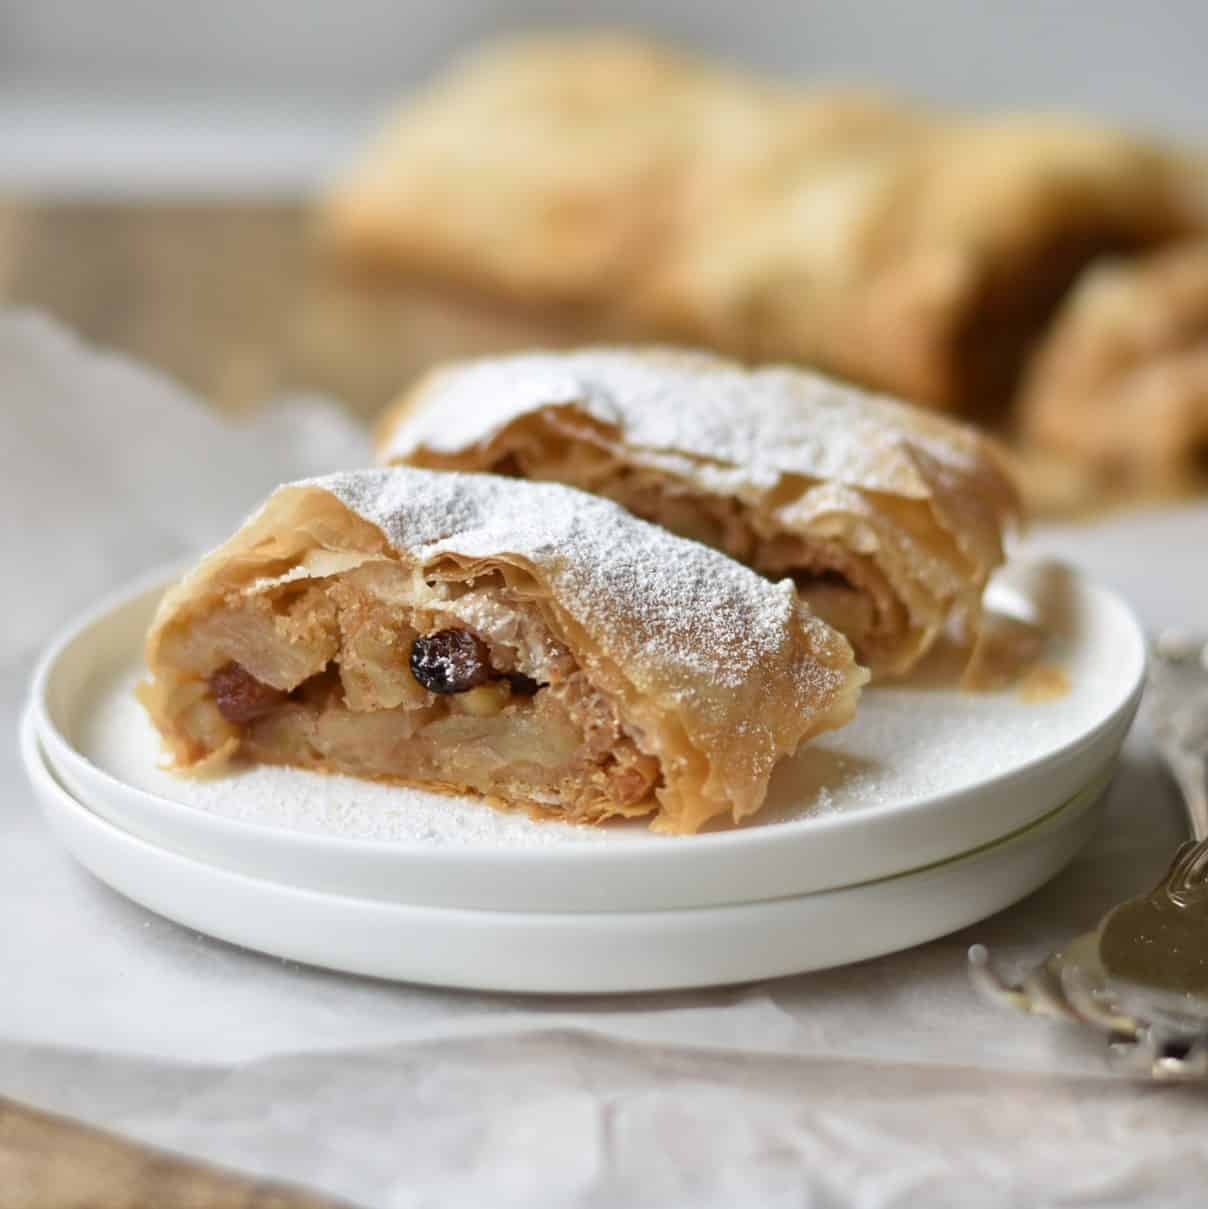 Apple Strudel plated slices dusted with icing sugar.